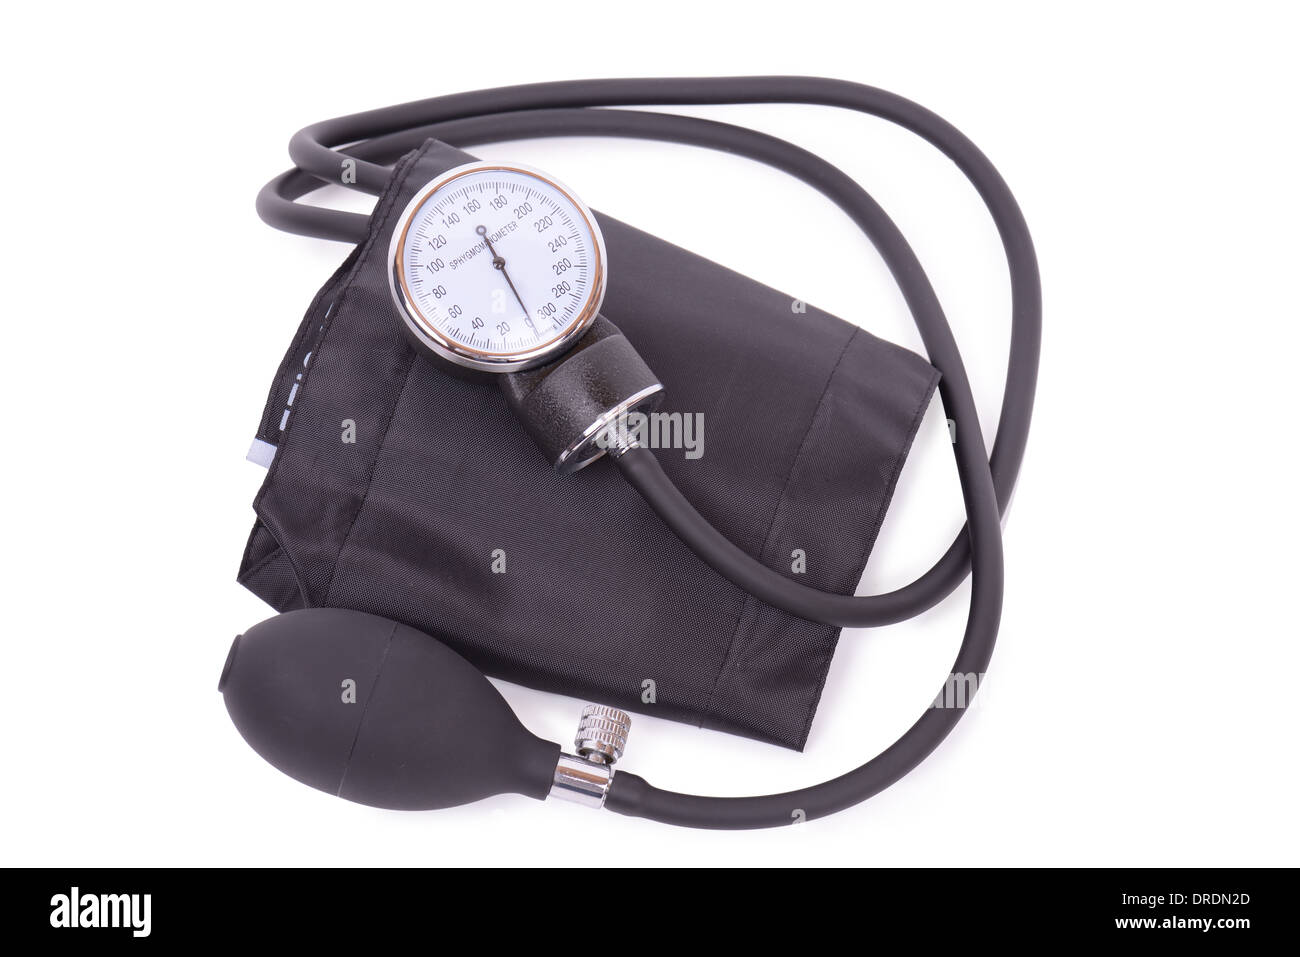 Sphygmomanometer isolated on a white background with clipping path - Stock Image